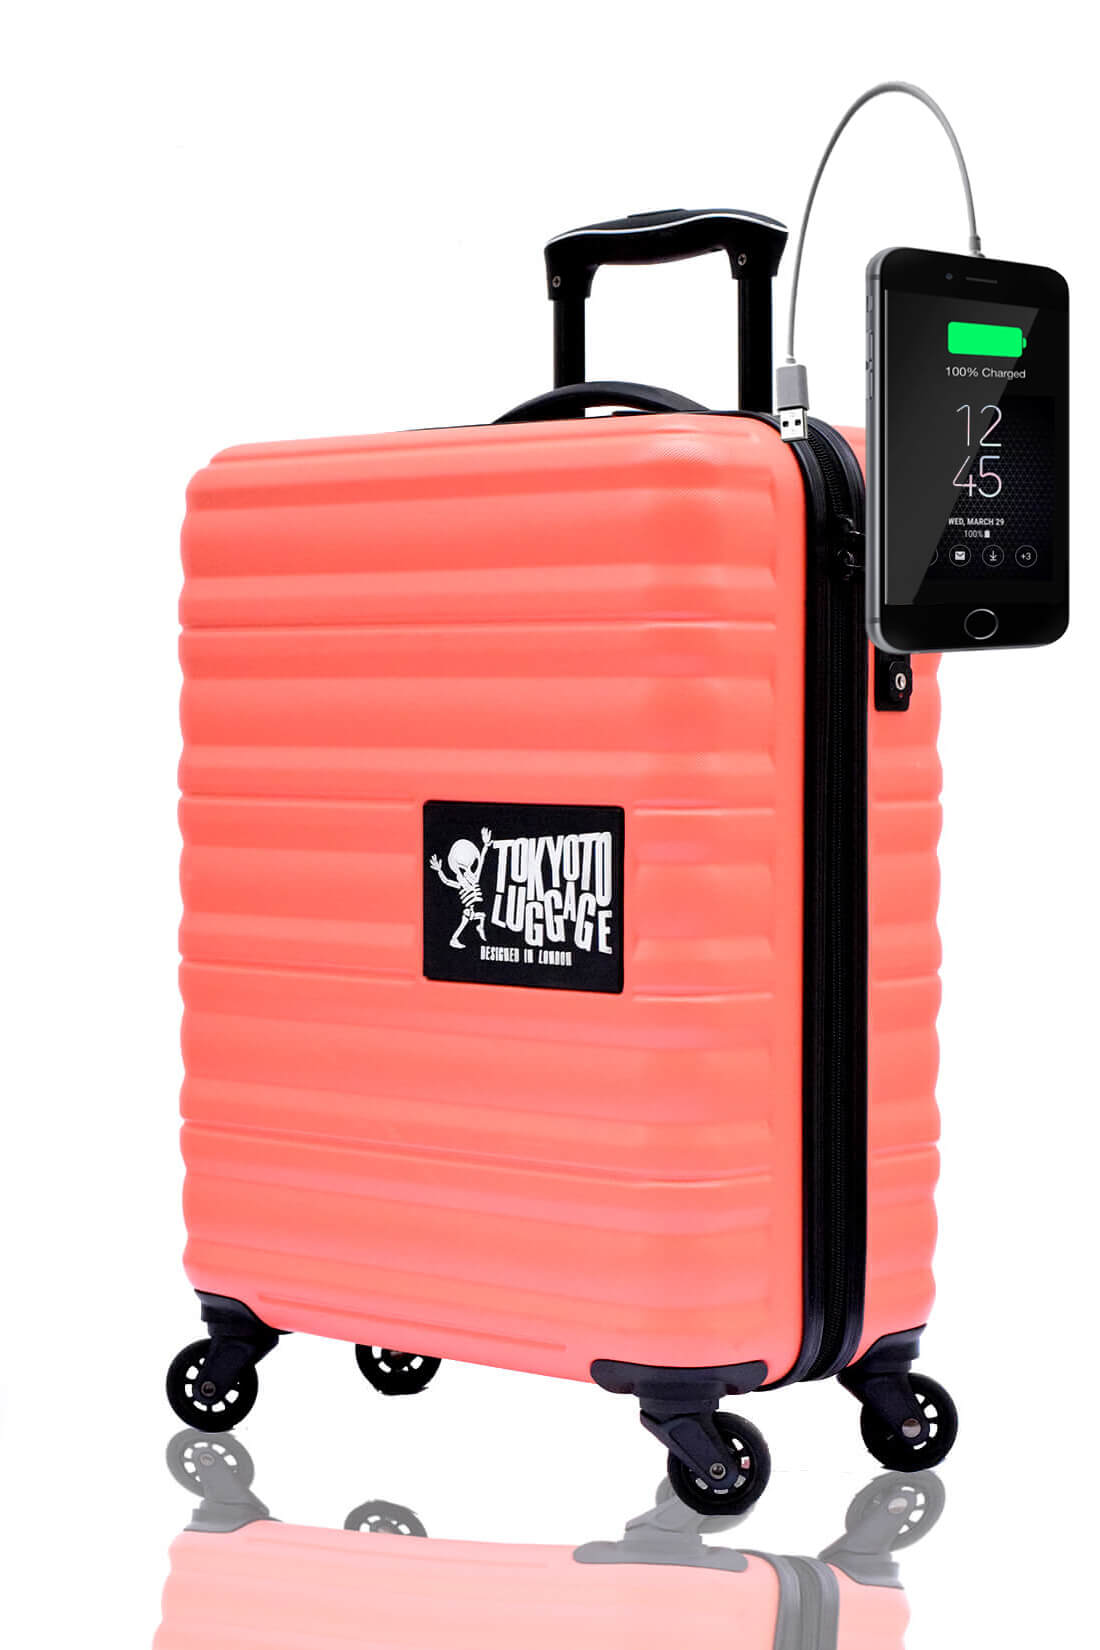 Unicolores Valise Online Cabine Trolley Enfant TOKYOTO LUGGAGE Modelle CORAL